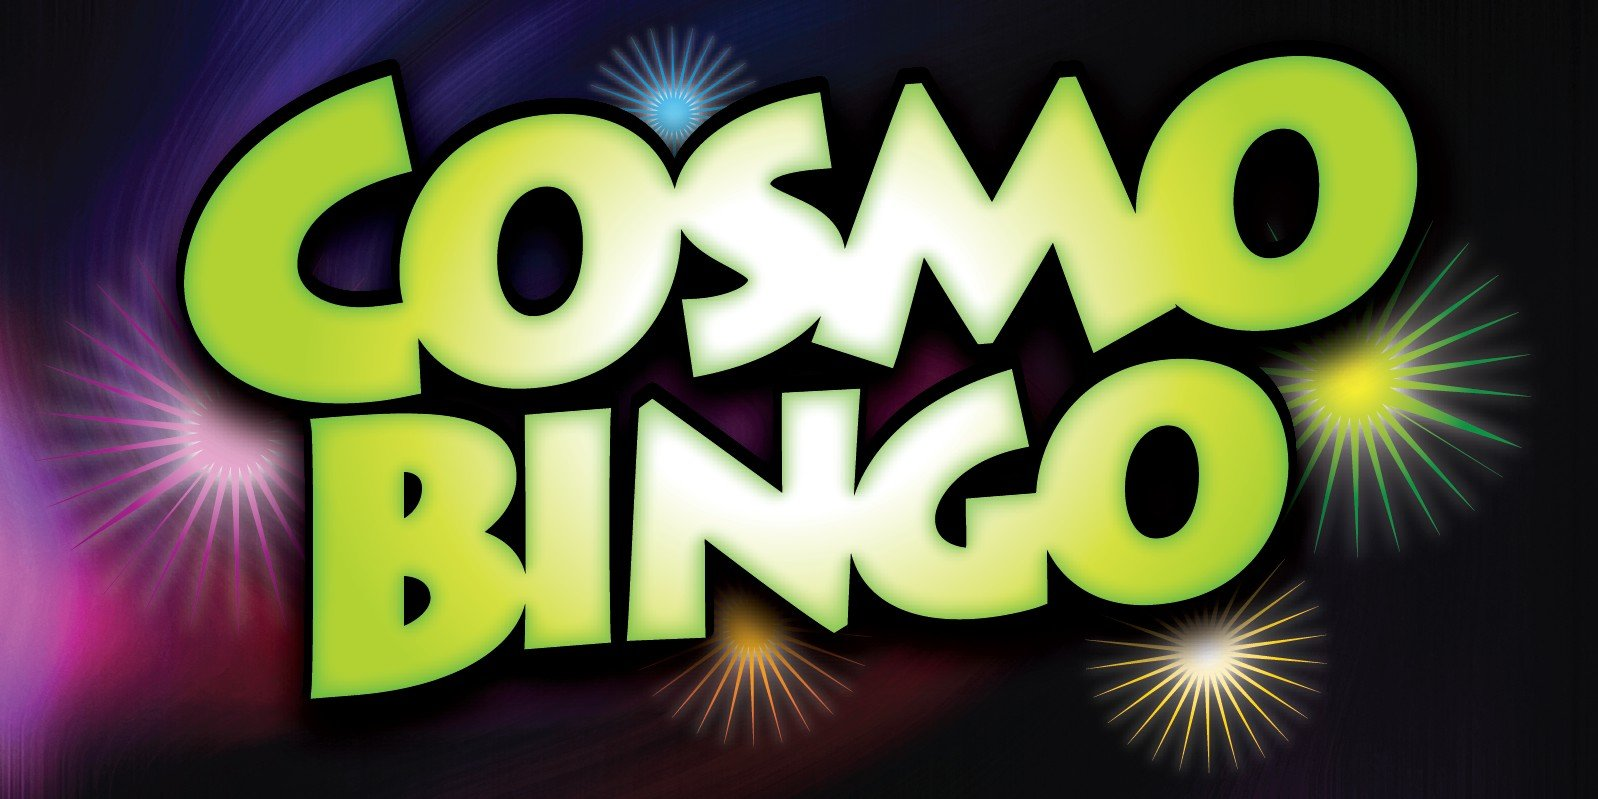 Web Header Promotion - March Cosmo Bingo